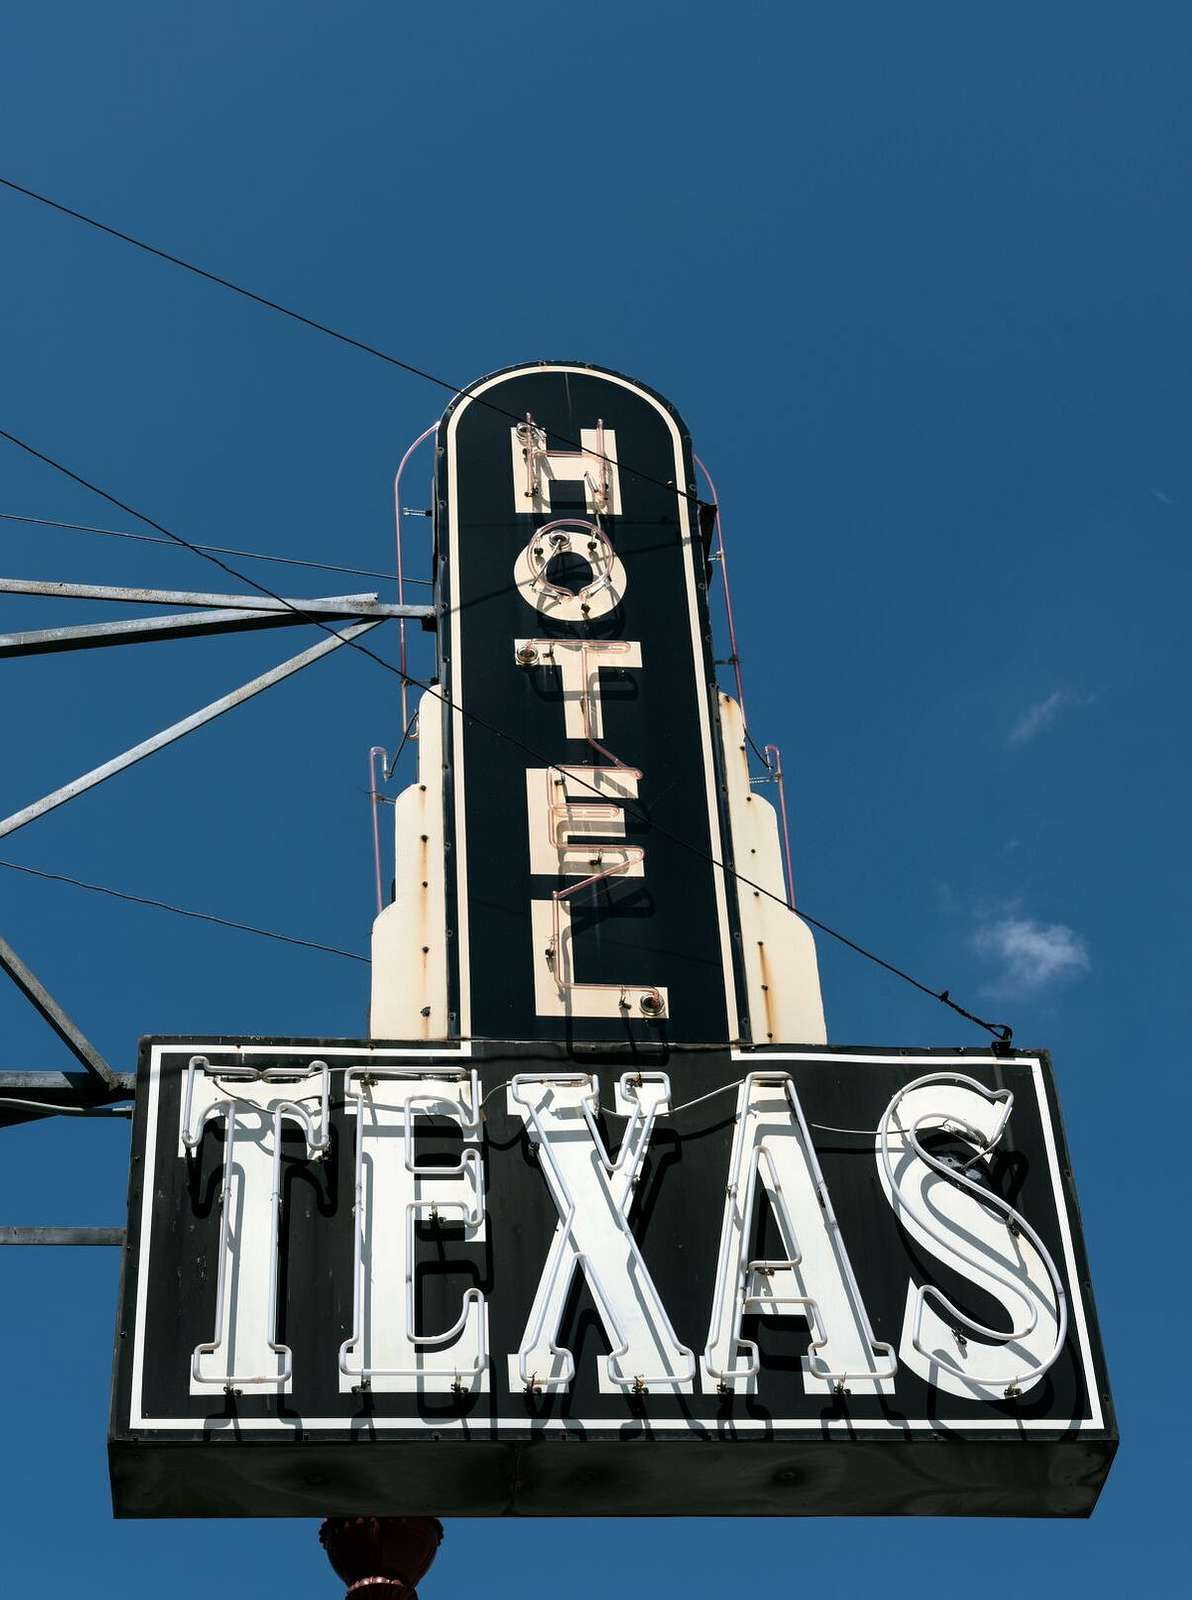 Hotel marquee for Hotel Texas in the Stockyards District of Fort Worth, Texas